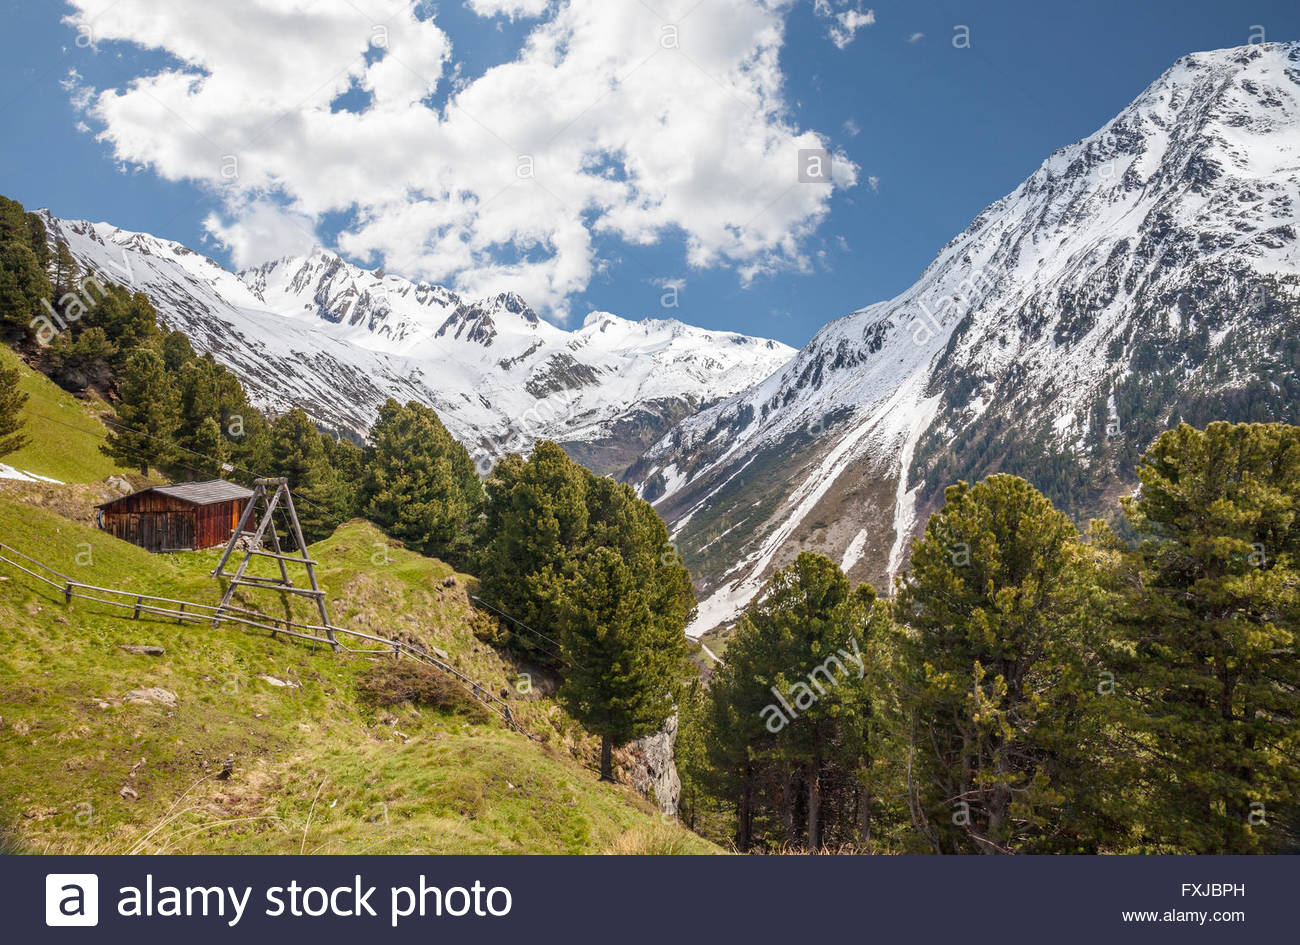 Alp in Riva di Tures, Campo Tures, South Tyrol, Italy Stock Photo